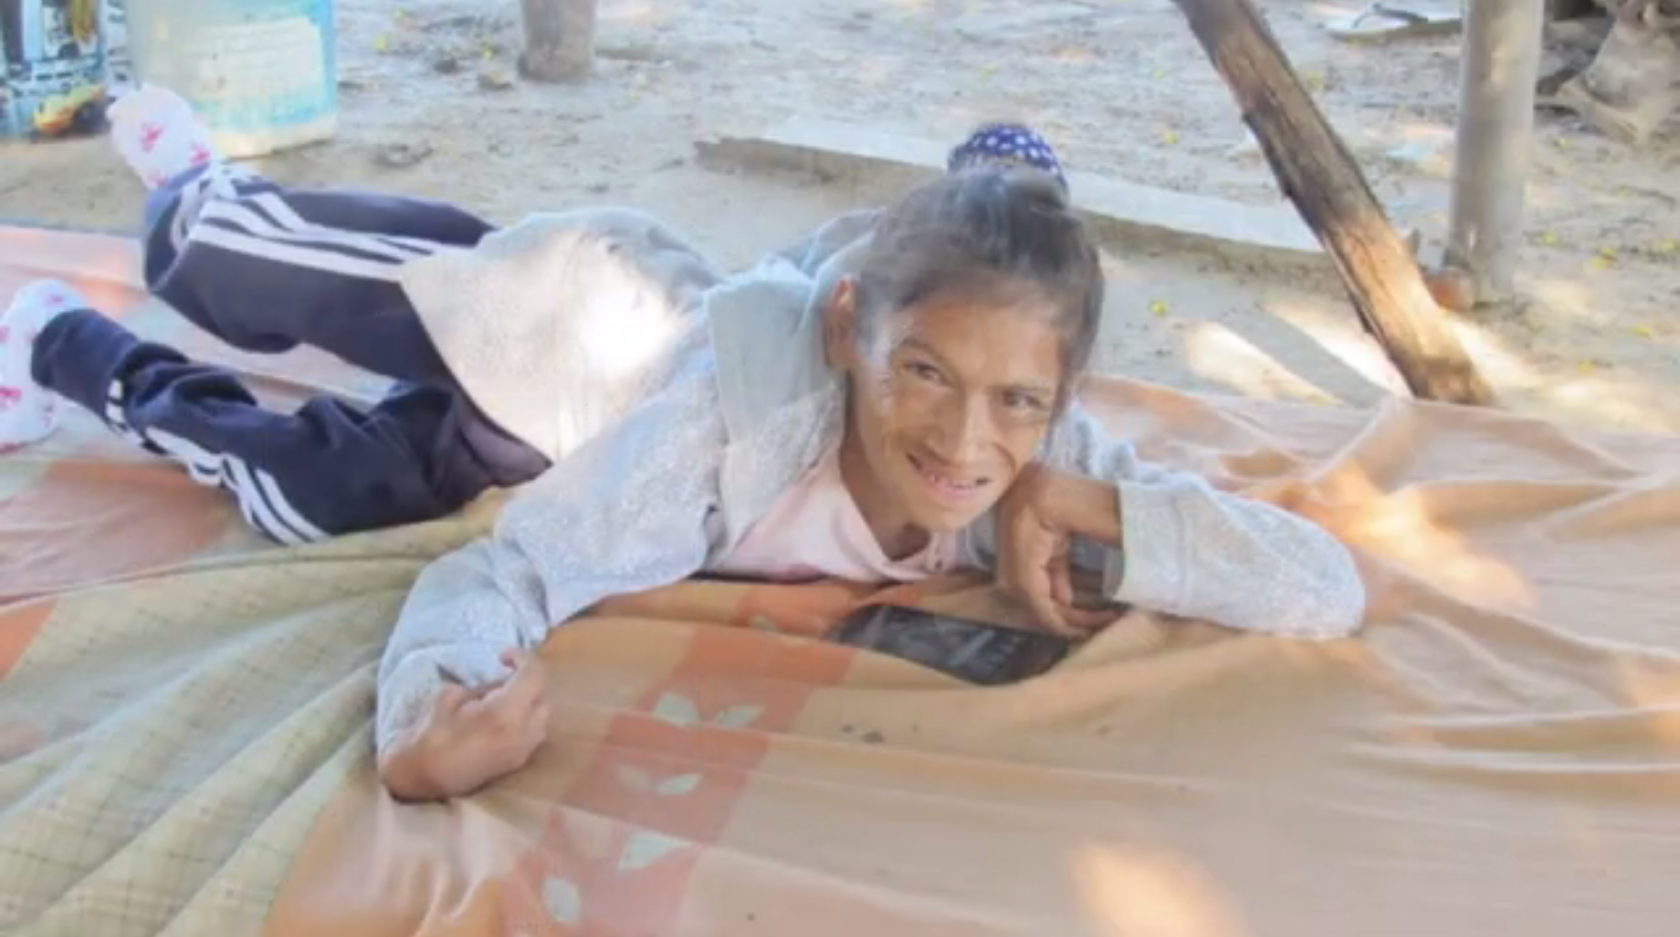 [Image]This is Rosa, 39 years old, in Asuncion, Paraguay. When she was 5, a bout of meningitis left her paralyzed. As she is not able to move her limbs, she uses her chin & nose to scroll her mobile phone & send texts. Don't take what we have for granted! Count our blessings! Photo: Tzu Chi Paraguay